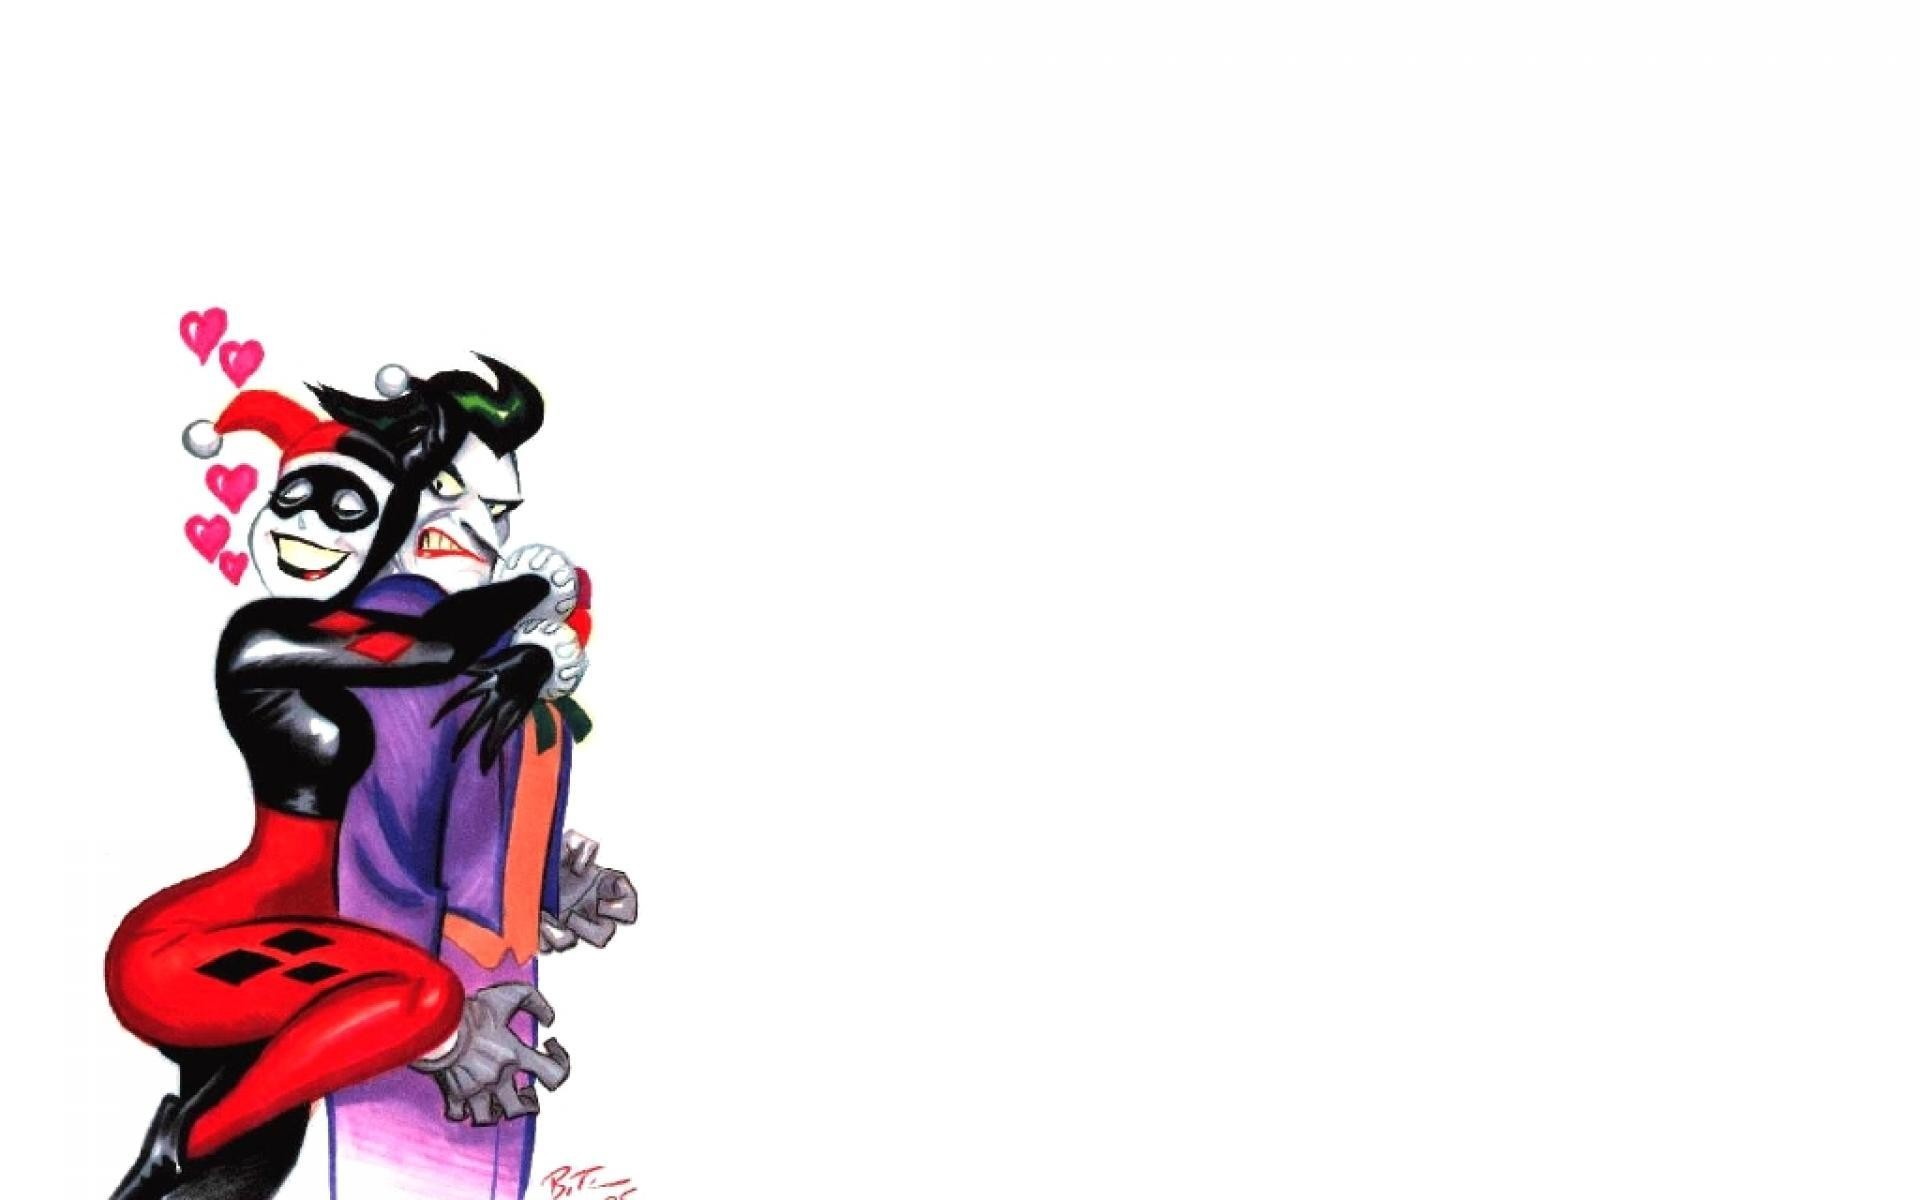 Harley Quinn And Joker Wallpaper Hd Iphone Image Gallery Hcpr